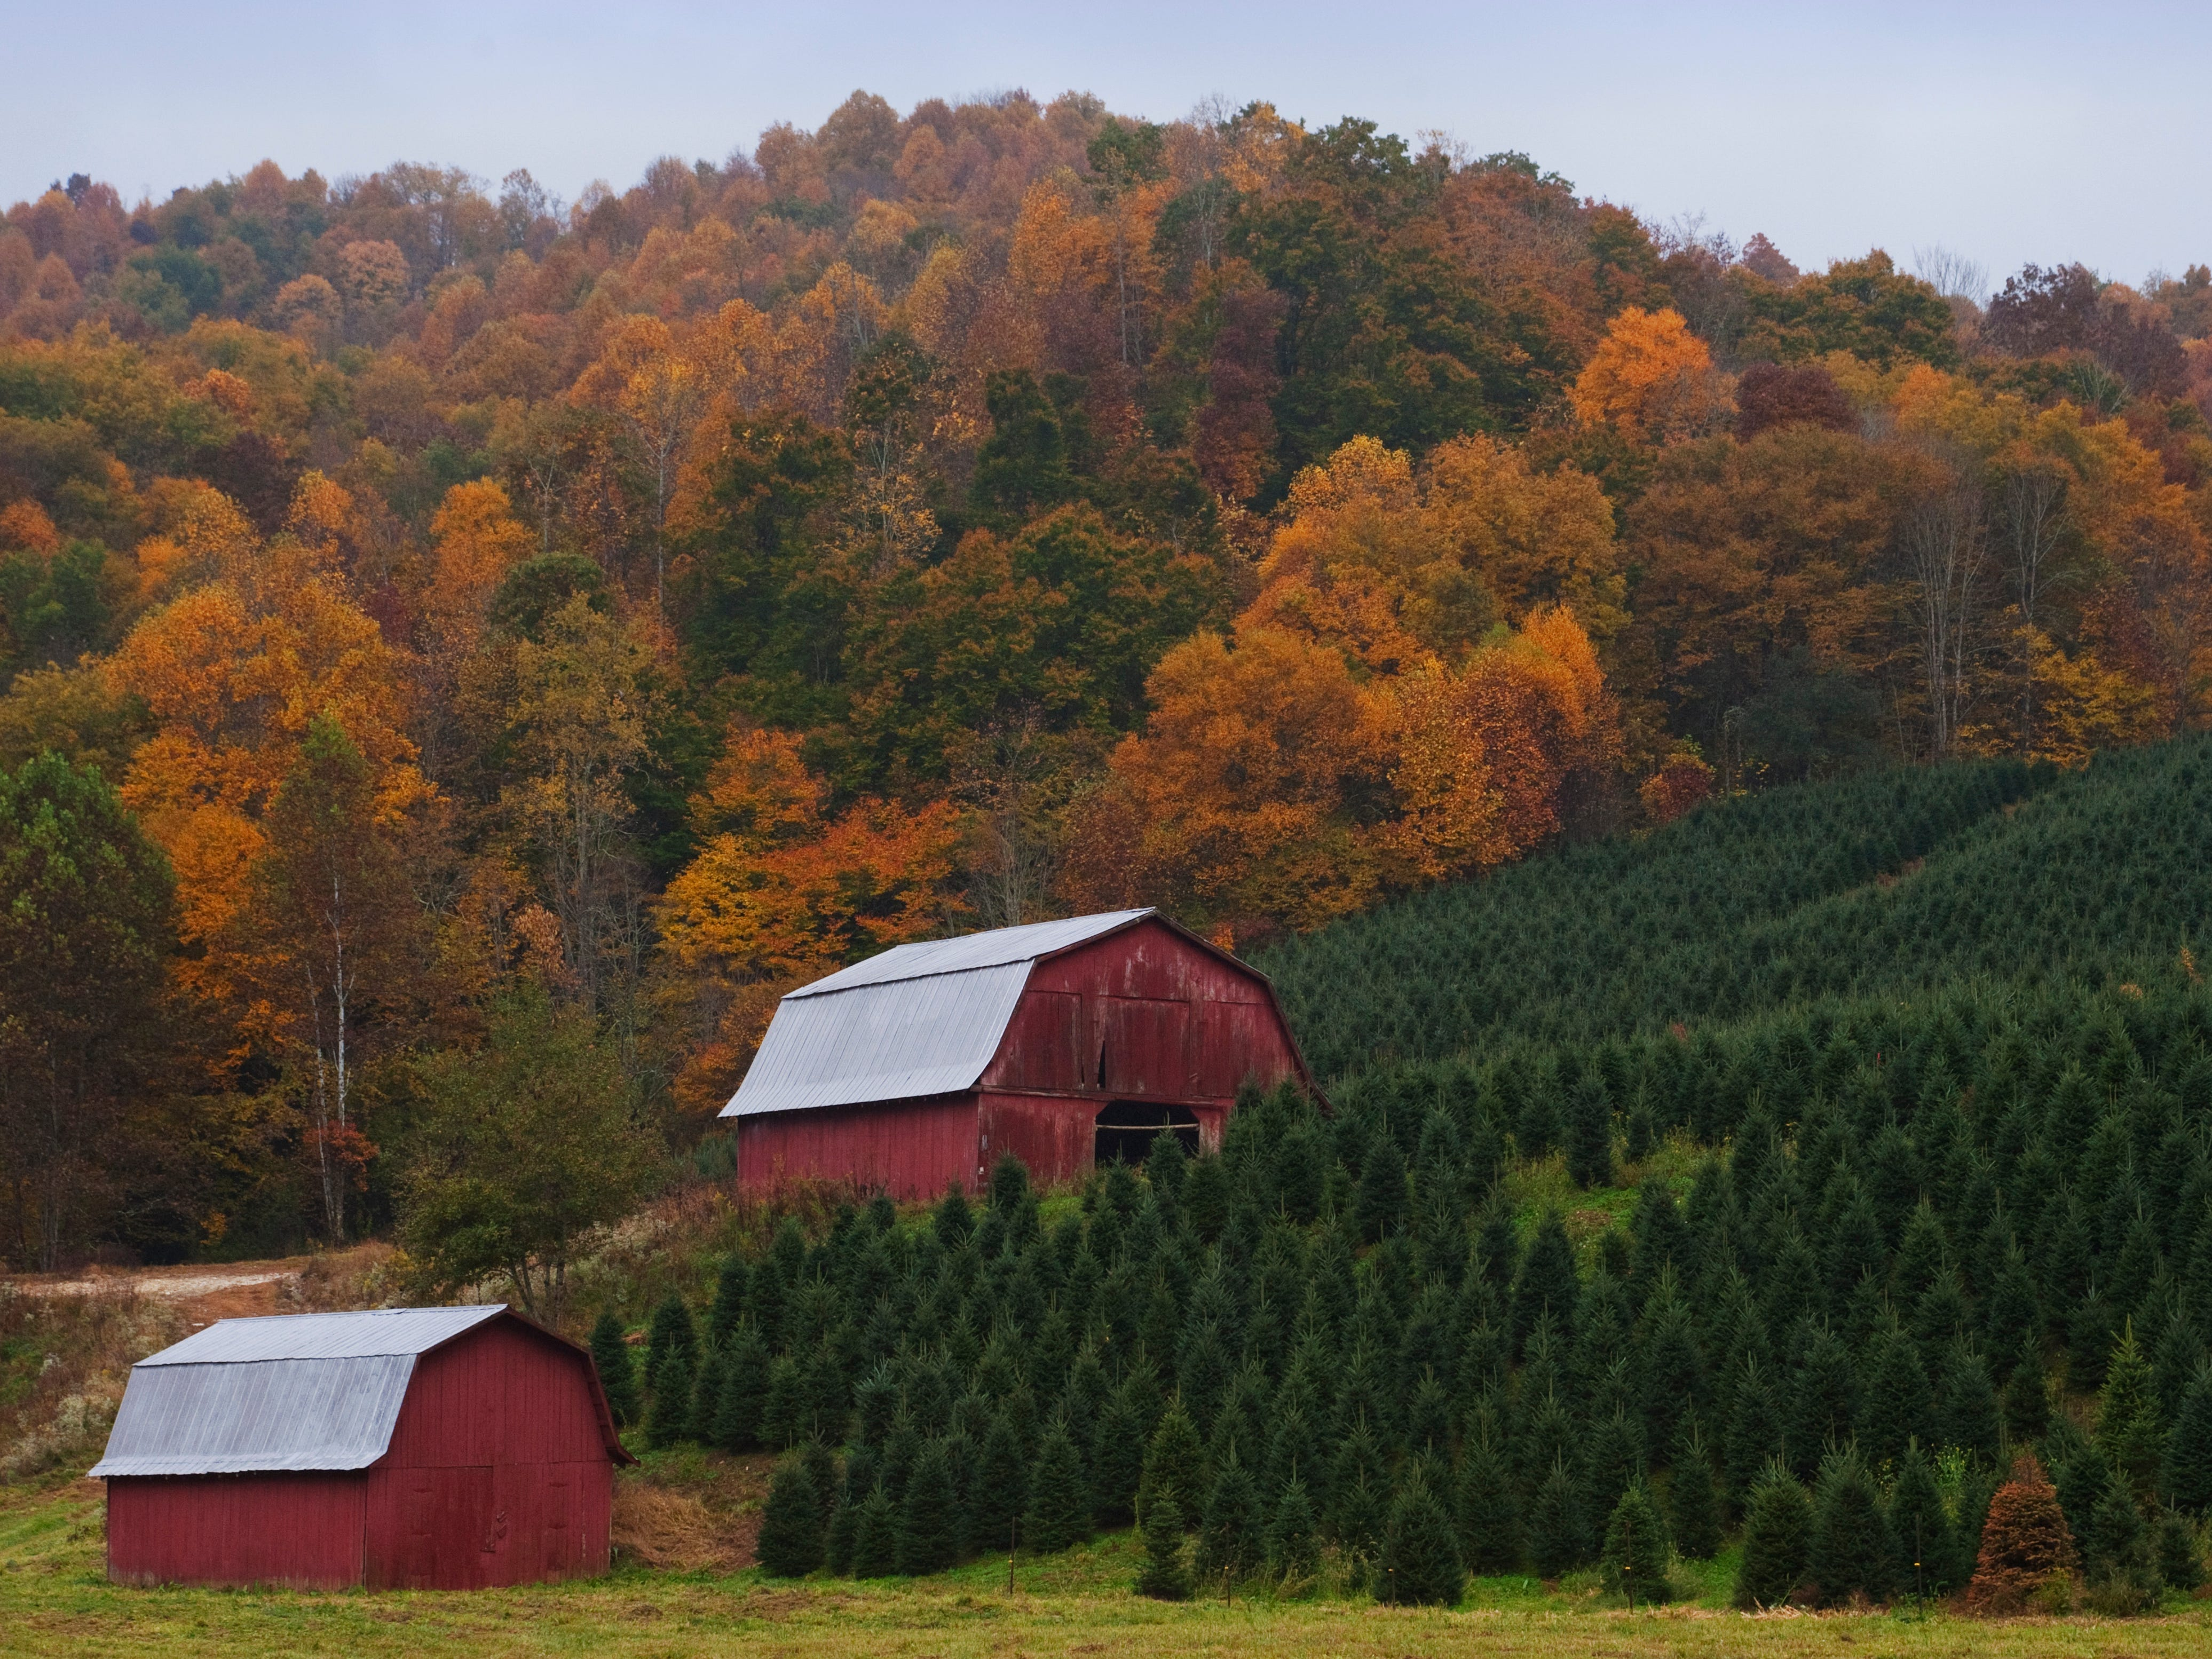 The main Fraser-growing areas are in counties in far northwest North Carolina, on the Tennessee or Virginia borders. The farm shown here is in Ashe County. Another prime area for Fraser growing is south of Asheville.